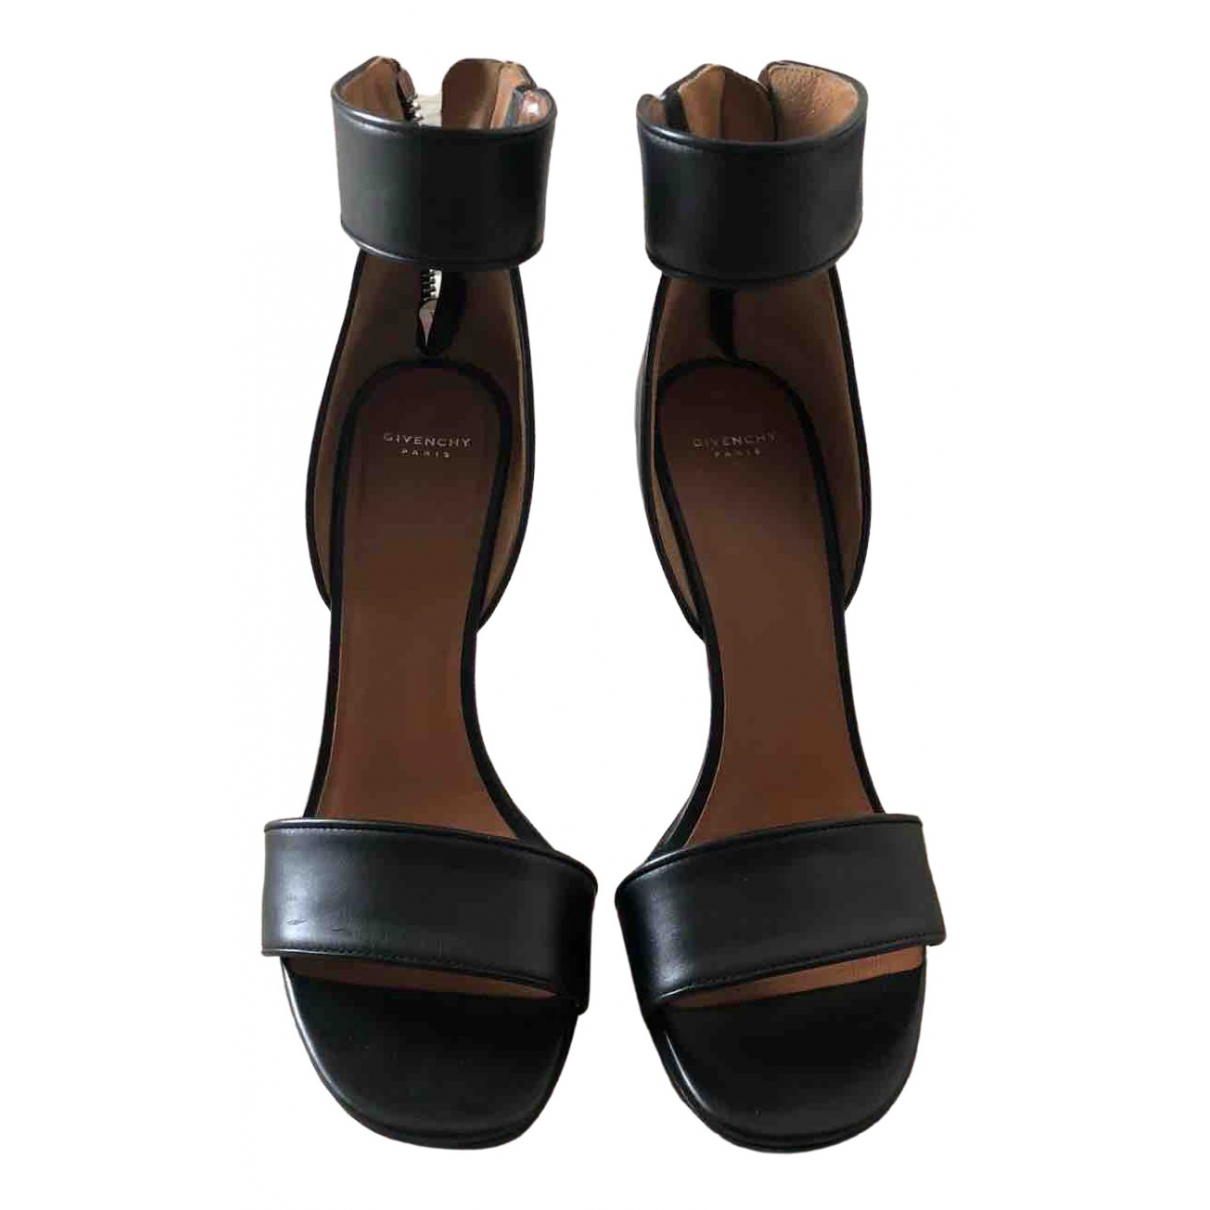 Givenchy \N Black Leather Sandals for Women 39 EU